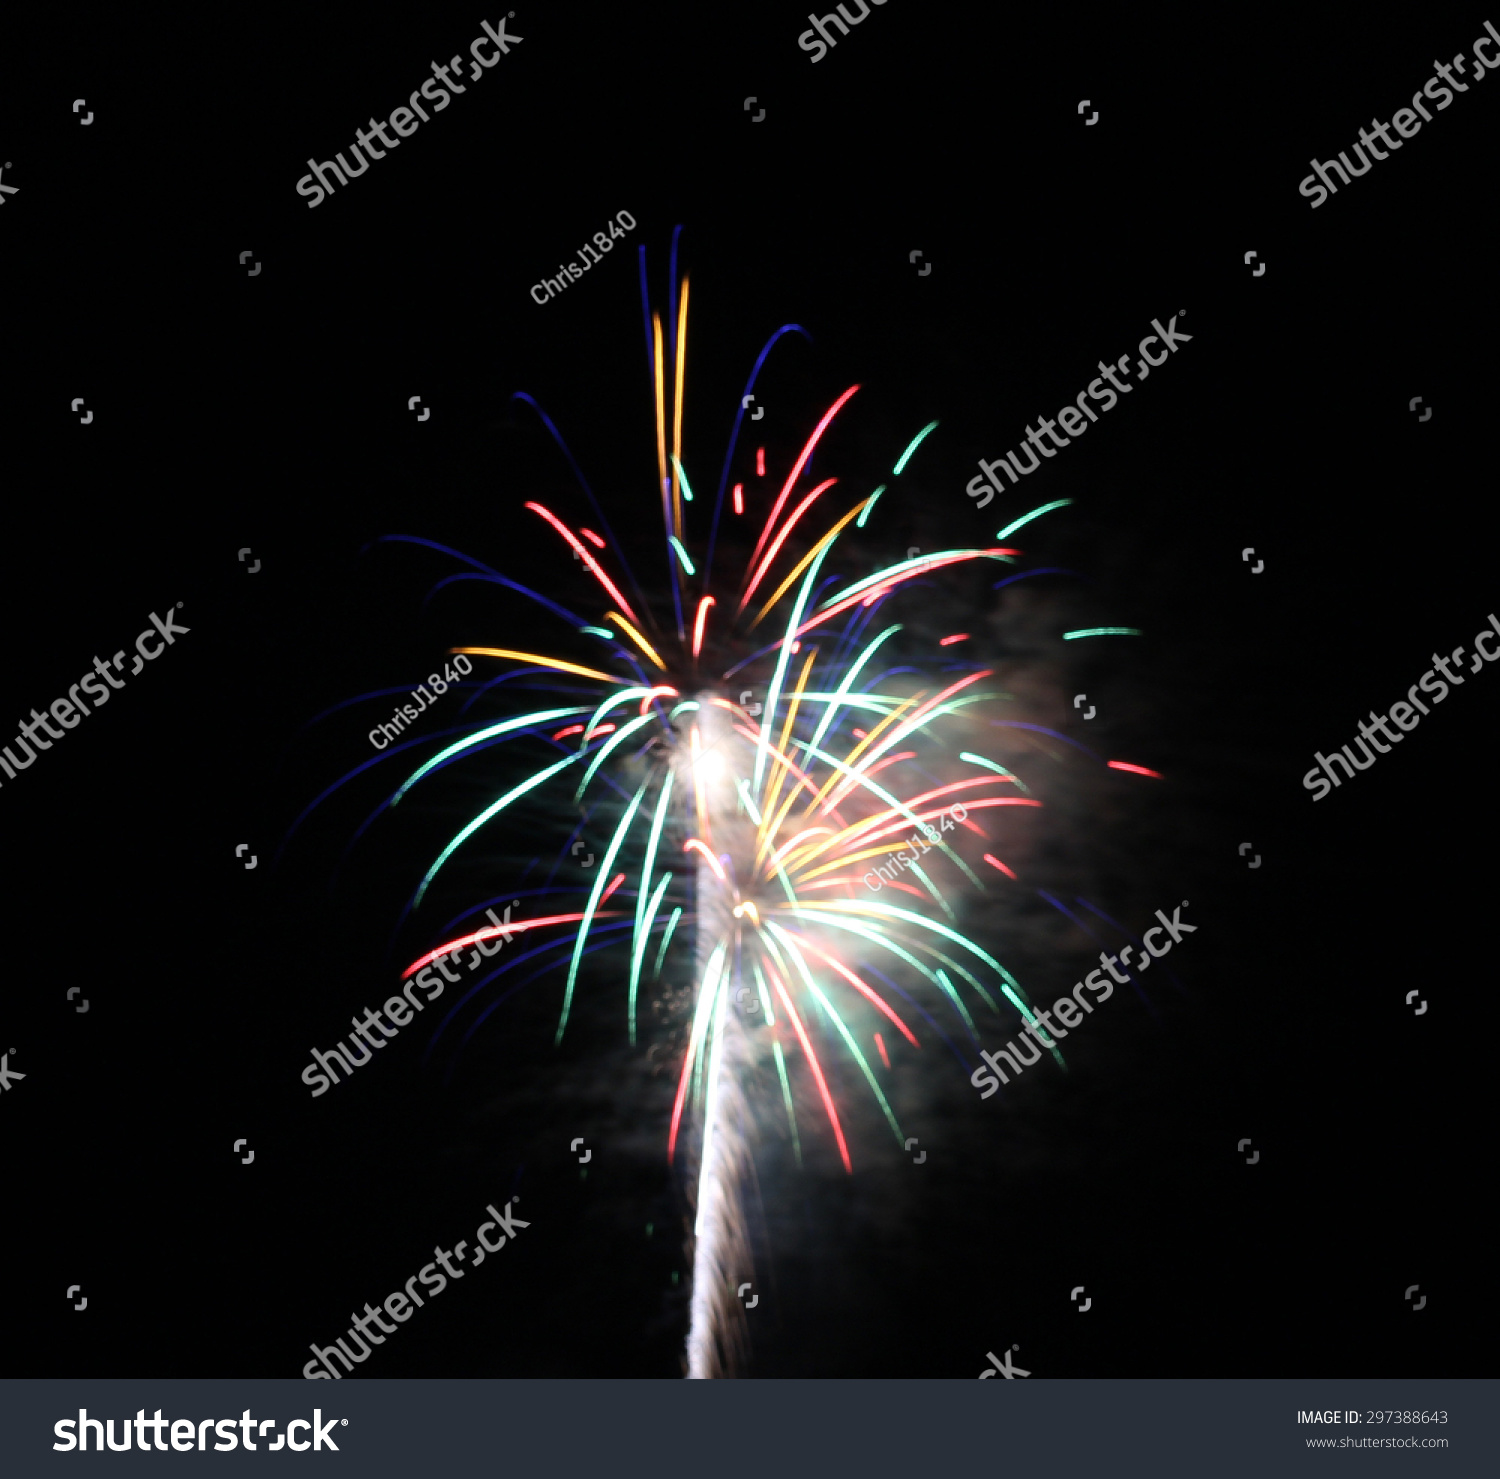 Blue Green Yellow Red Stream Firework Stock Photo ...